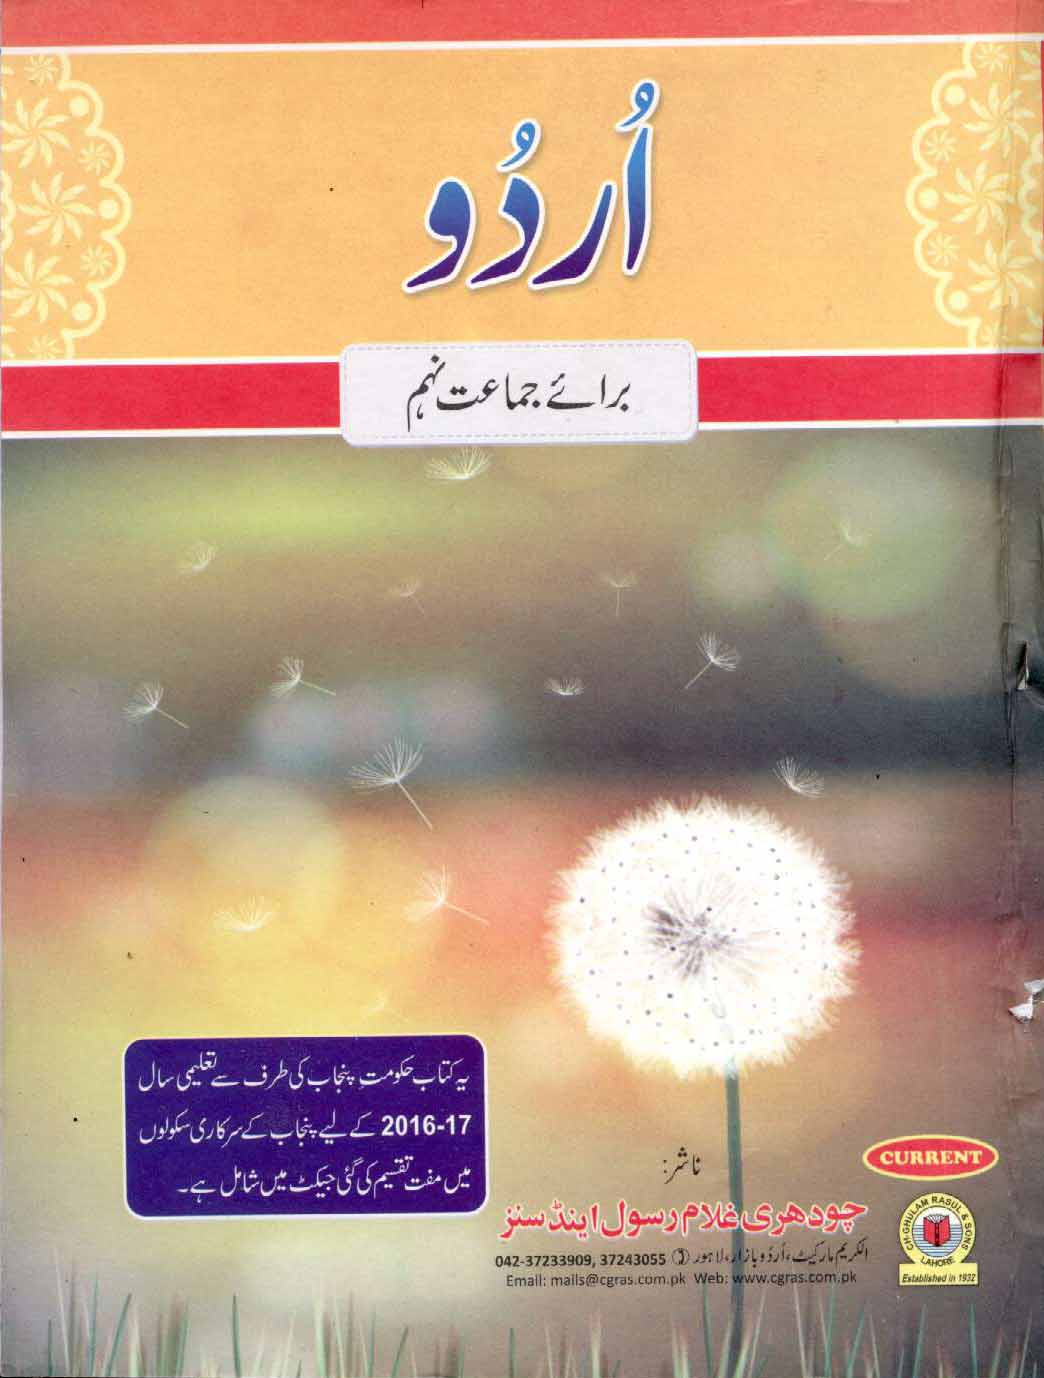 9th Class Urdu Book Free Download In PDF